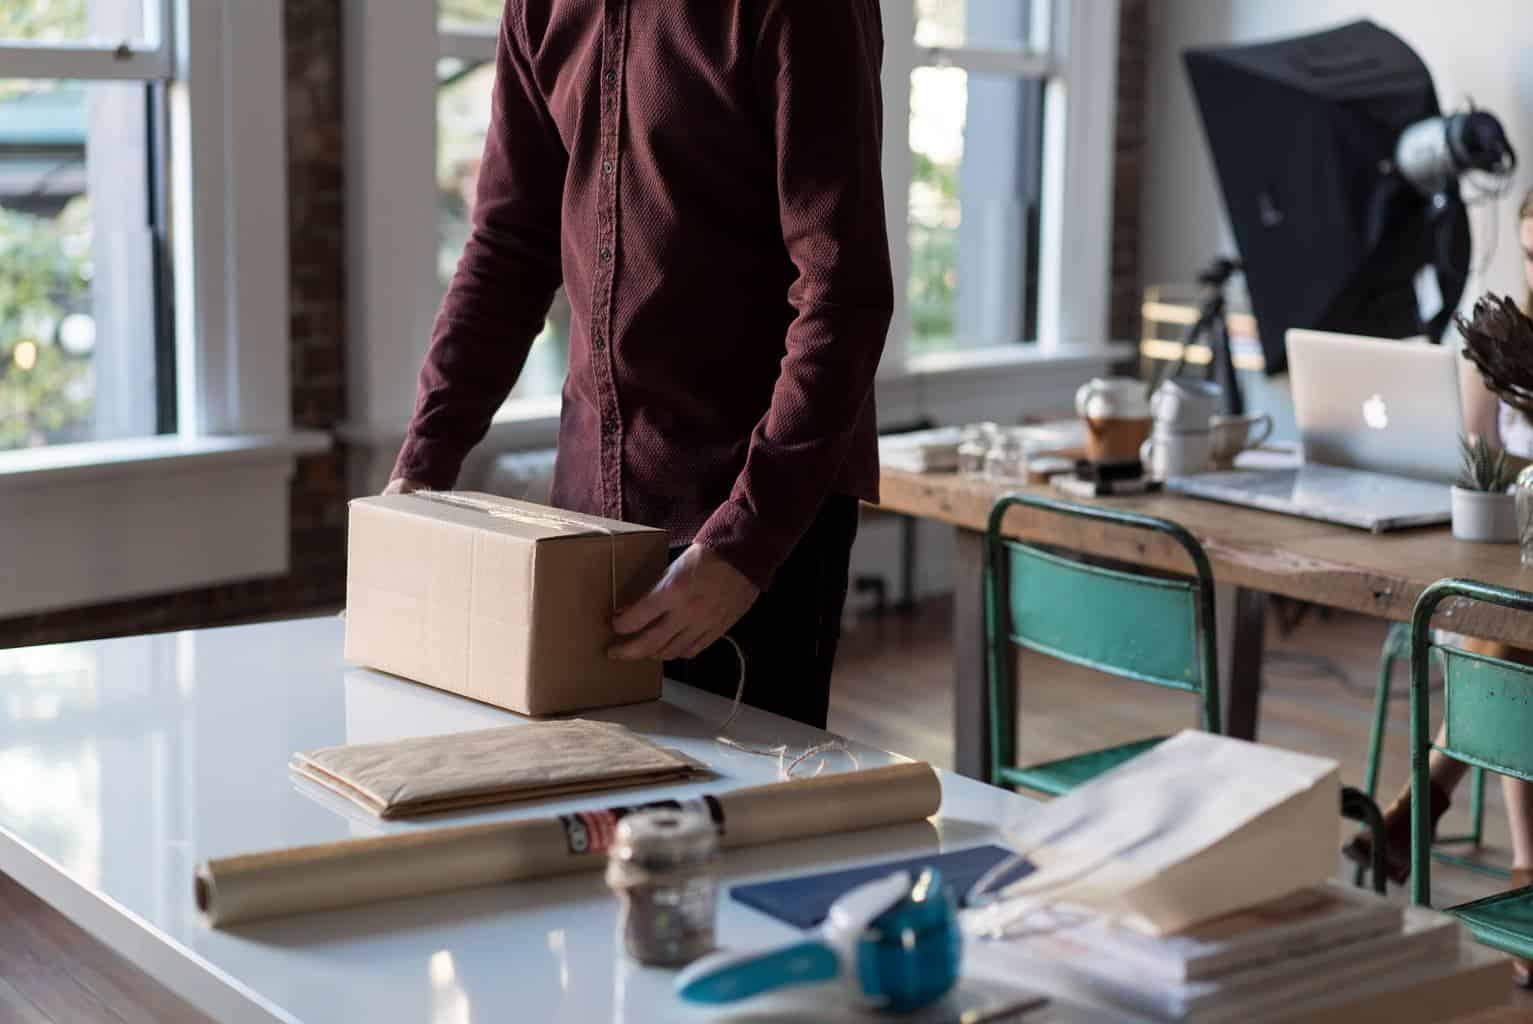 Is Dropshipping Dead? 5 Tips for Starting a Dropship Ecommerce Business